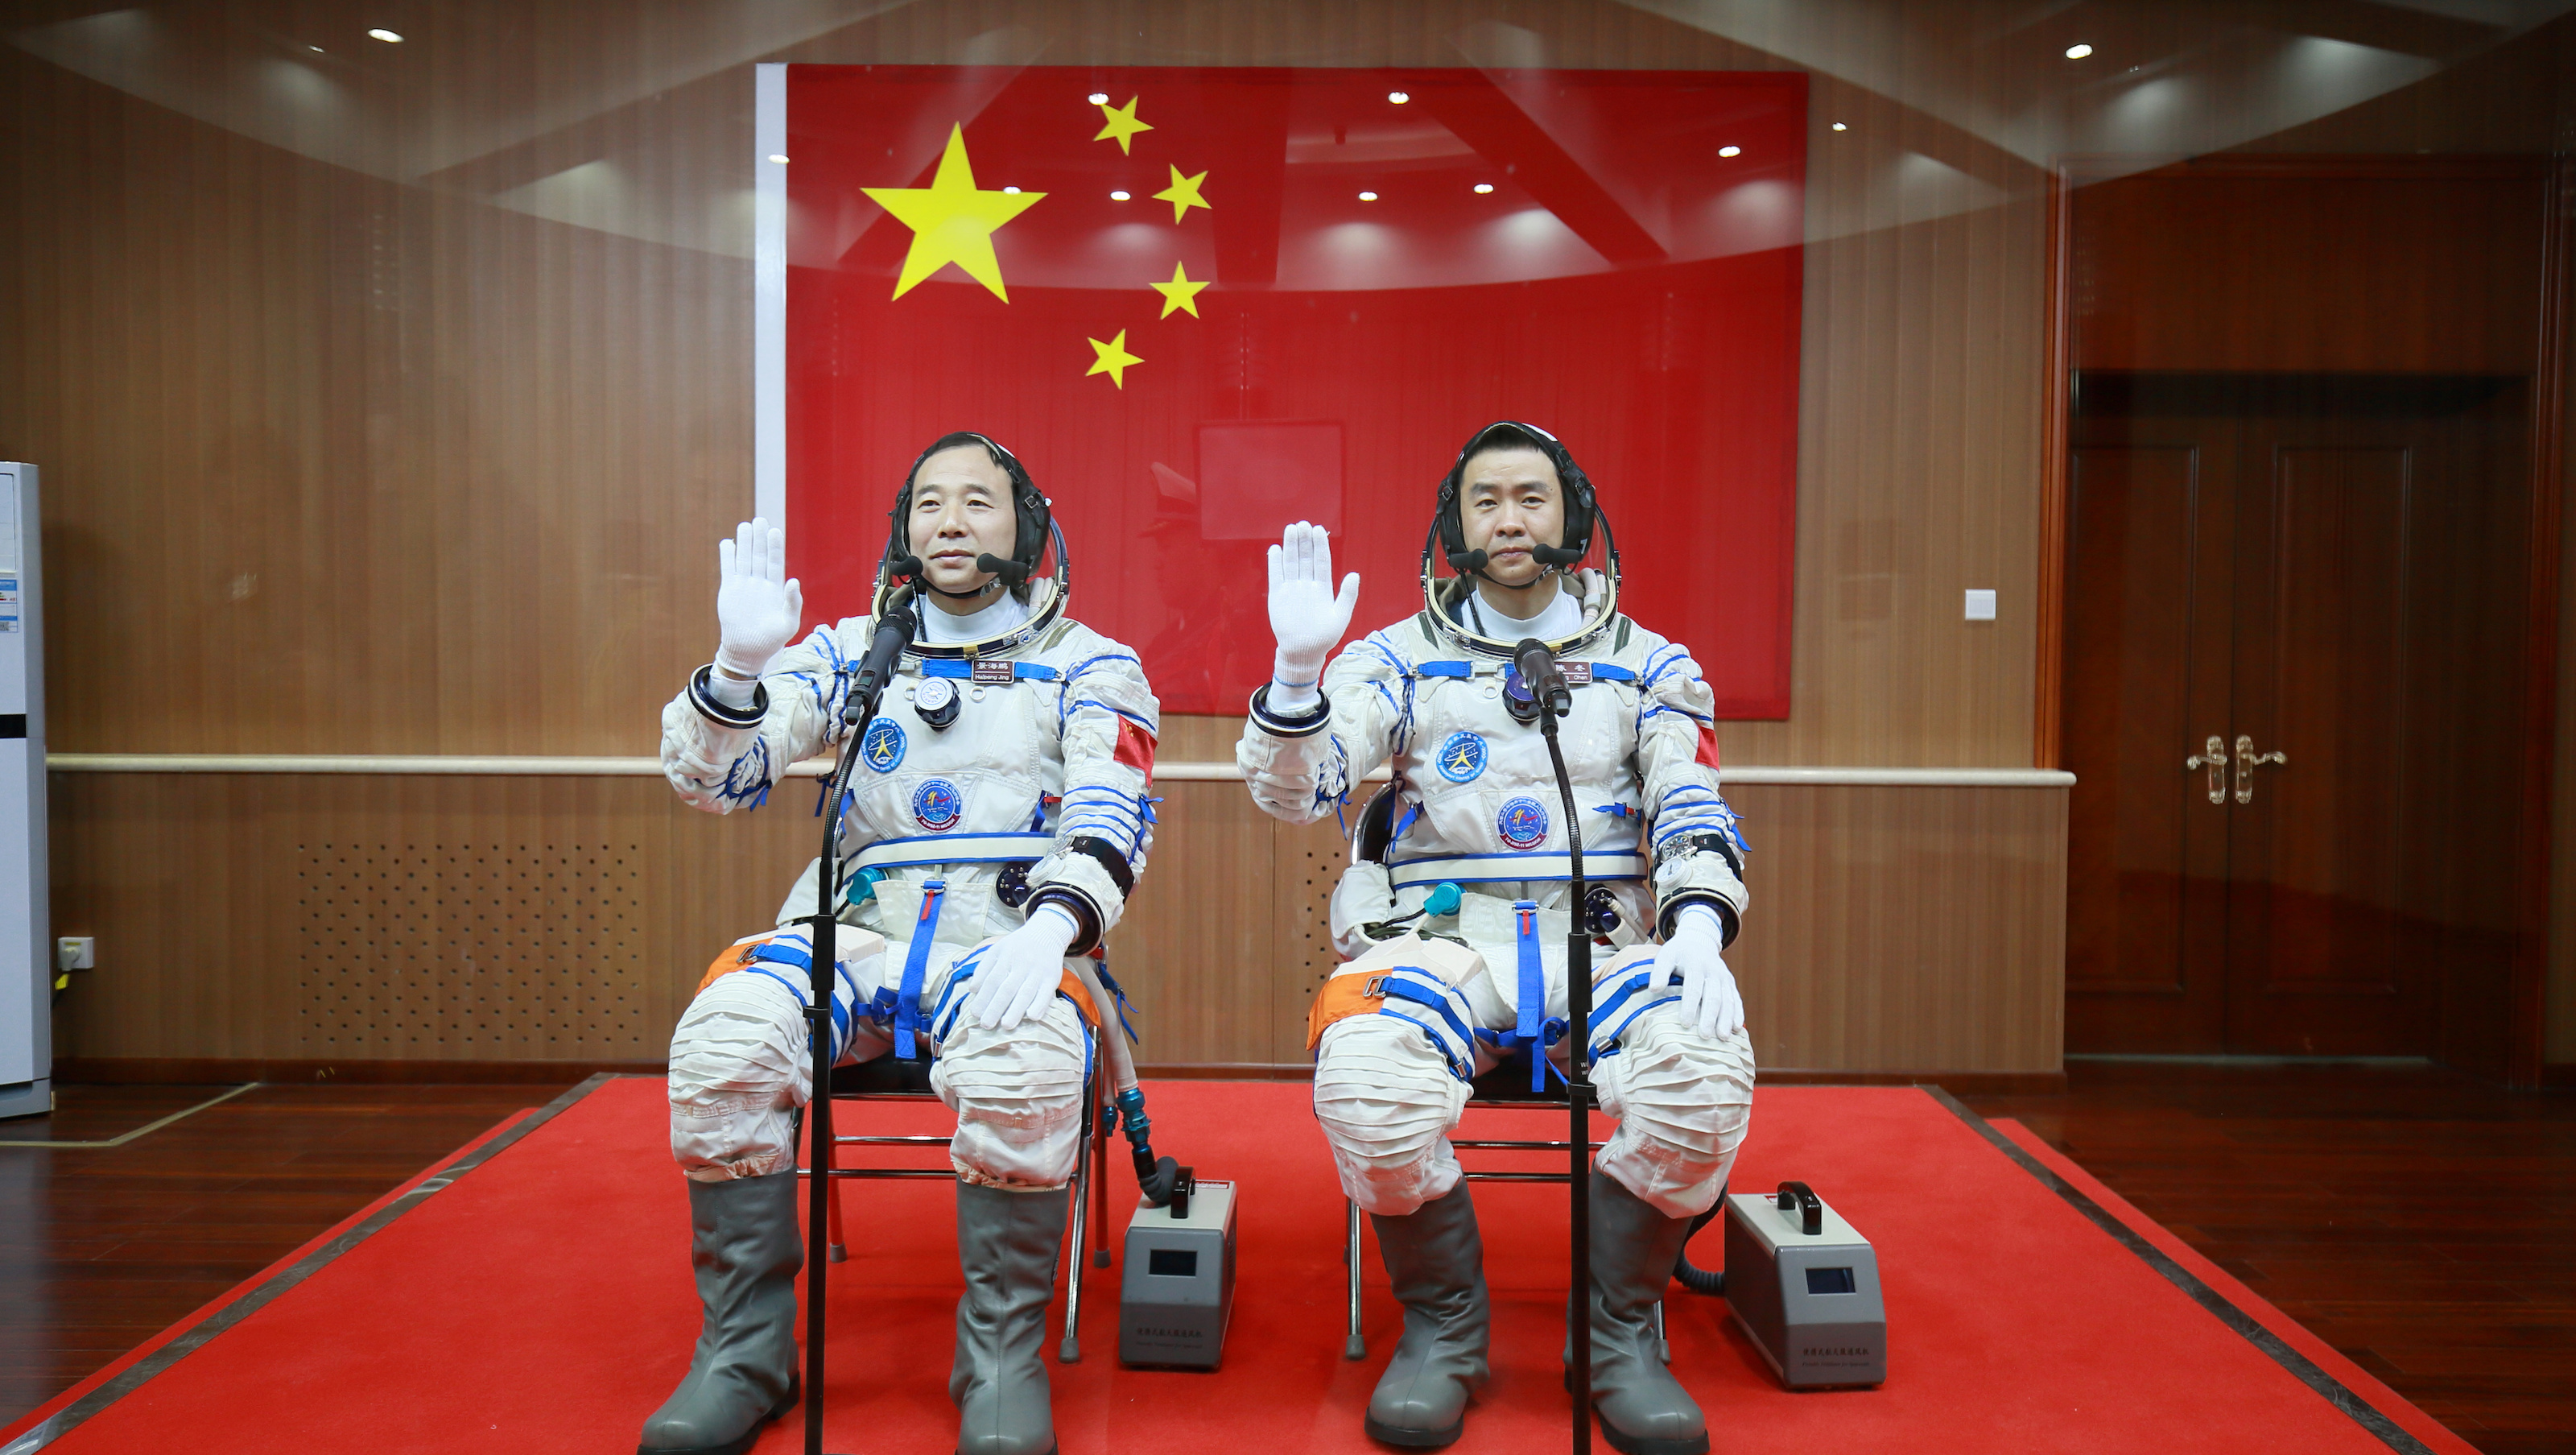 Chinese astronauts Jing Haipeng (L) and Chen Dong wave in front of a Chinese national flag before the launch of  Shenzhou-11 manned spacecraft, in Jiuquan, China, October 17, 2016. REUTERS/Stringer ATTENTION EDITORS - THIS PICTURE WAS PROVIDED BY A THIRD PARTY. EDITORIAL USE ONLY. CHINA OUT. NO COMMERCIAL OR EDITORIAL SALES IN CHINA. - D1AEUHLRNRAB